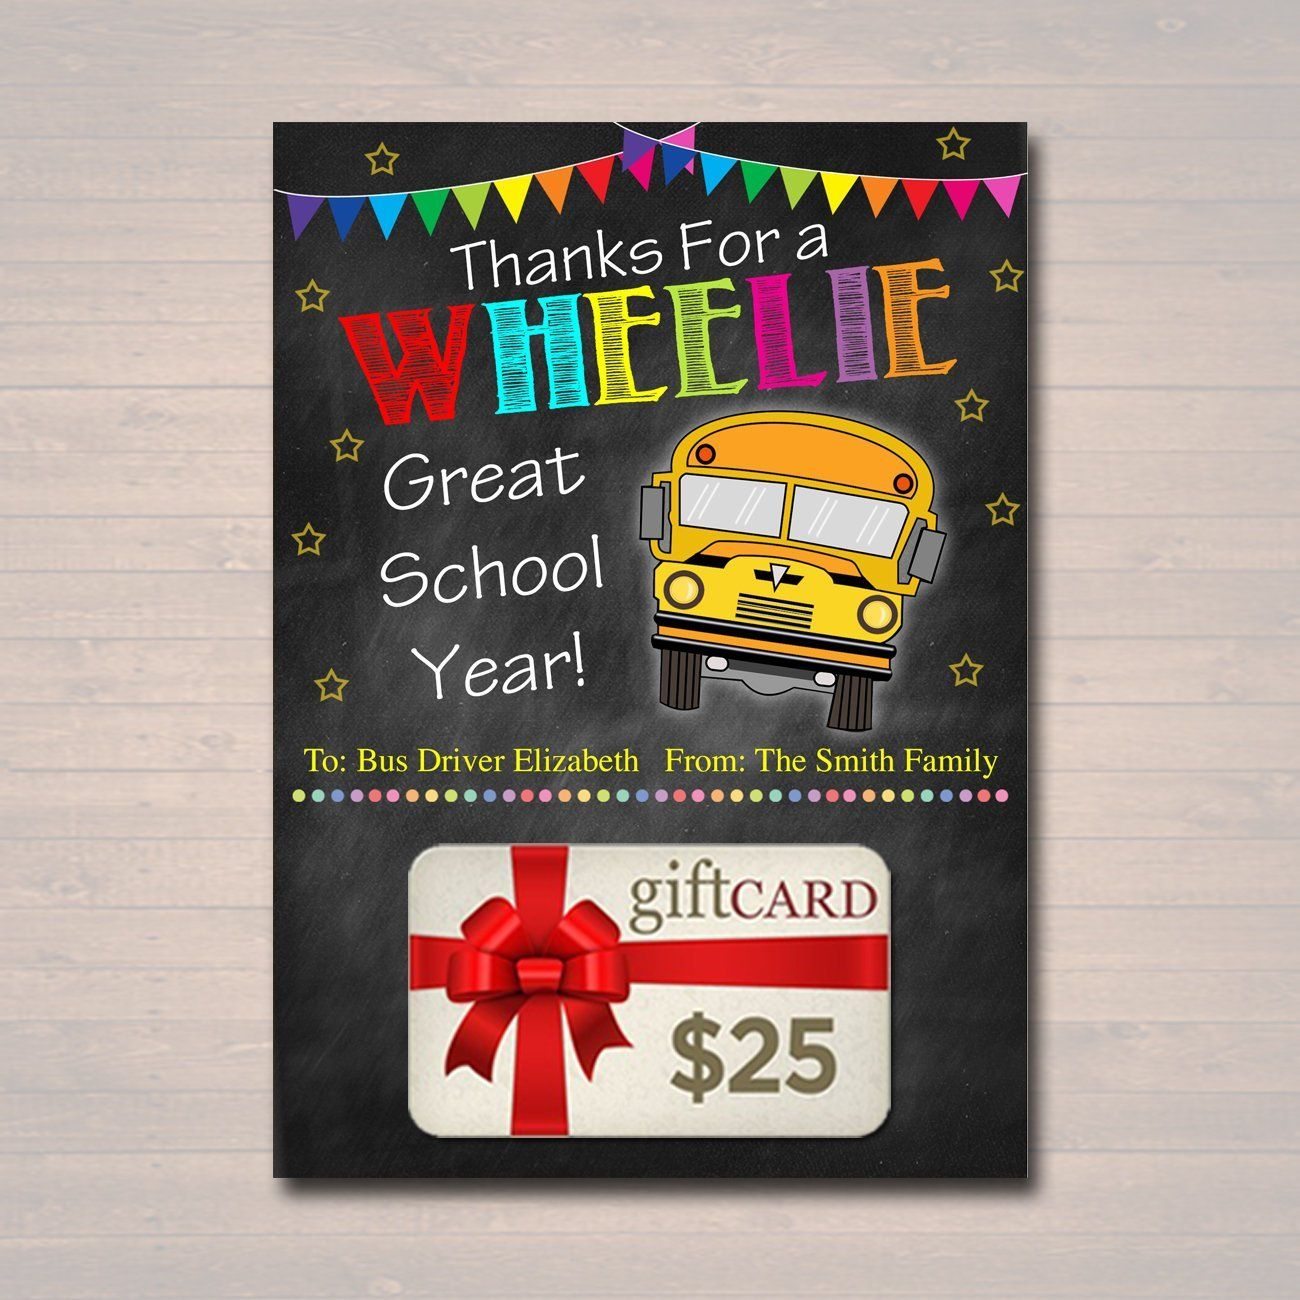 EDITABLE End of School Year Bus Driver Gift Card Holder, Printable Thank You Gift, Wheelie Great School's Out Bus Driver, INSTANT DOWNLOAD #eceappreciationgiftideas